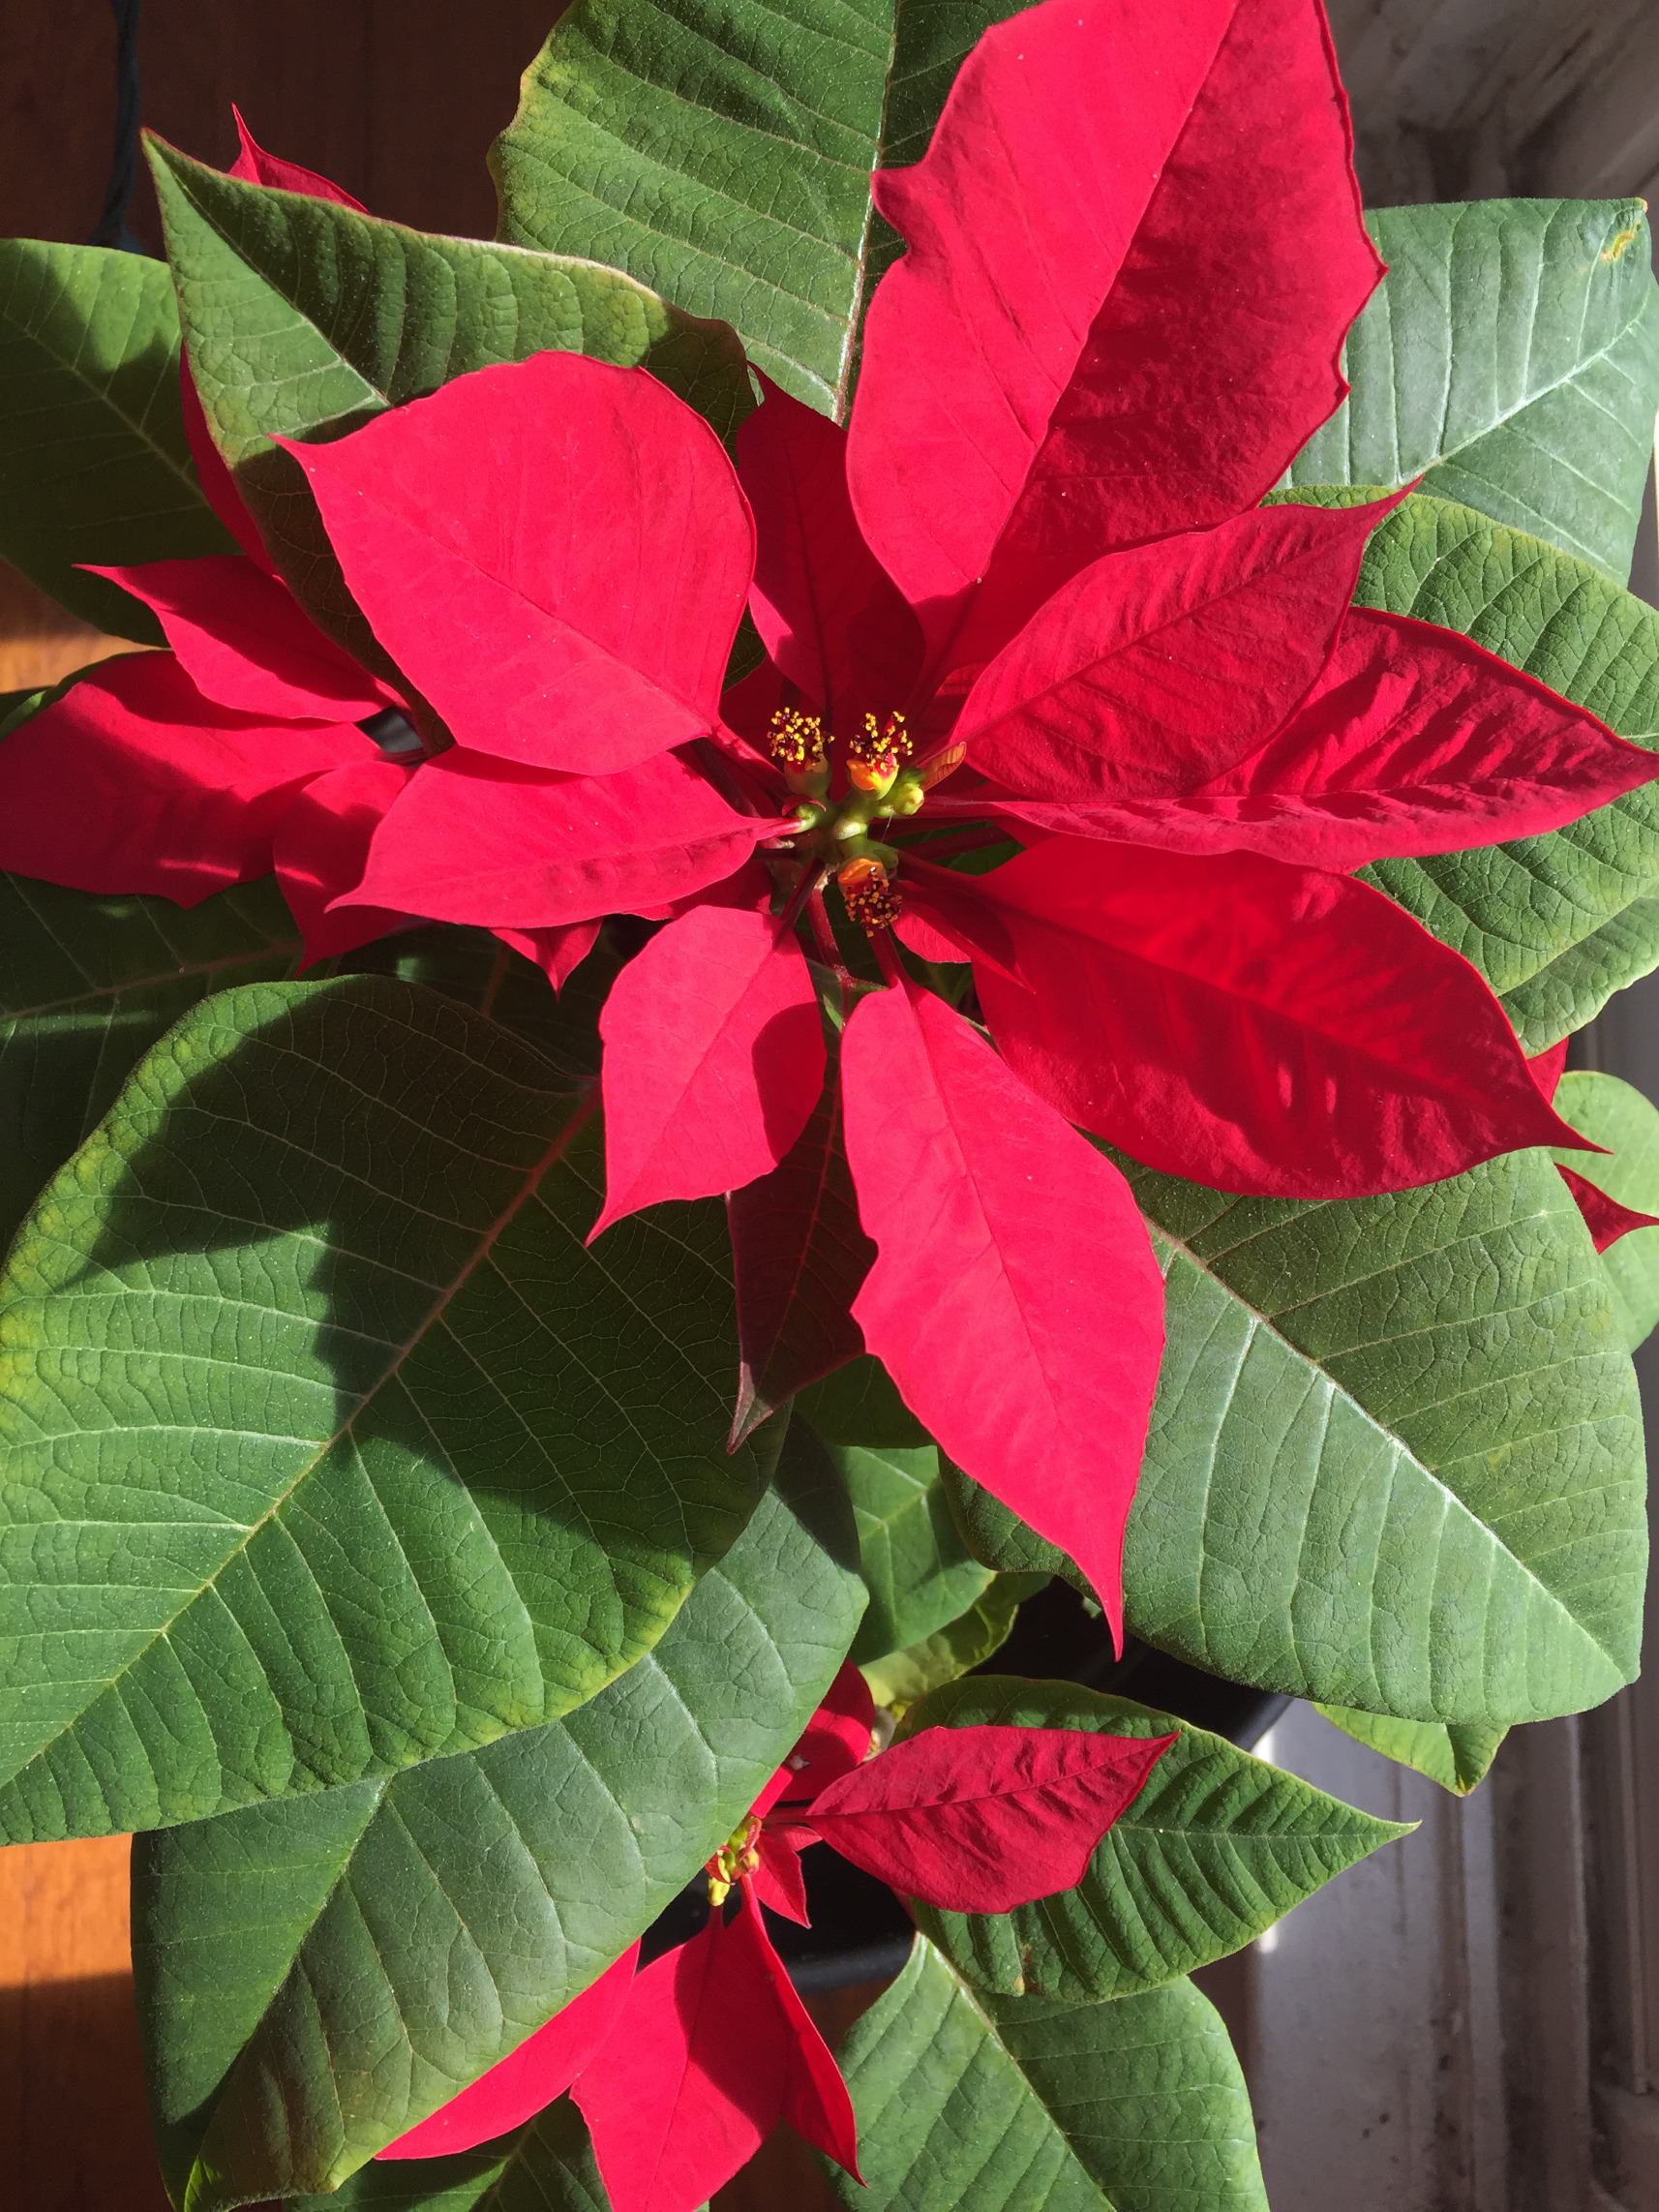 Poinsettia Care Tips Full Bloom Christmas Holidays Revive those someday goals